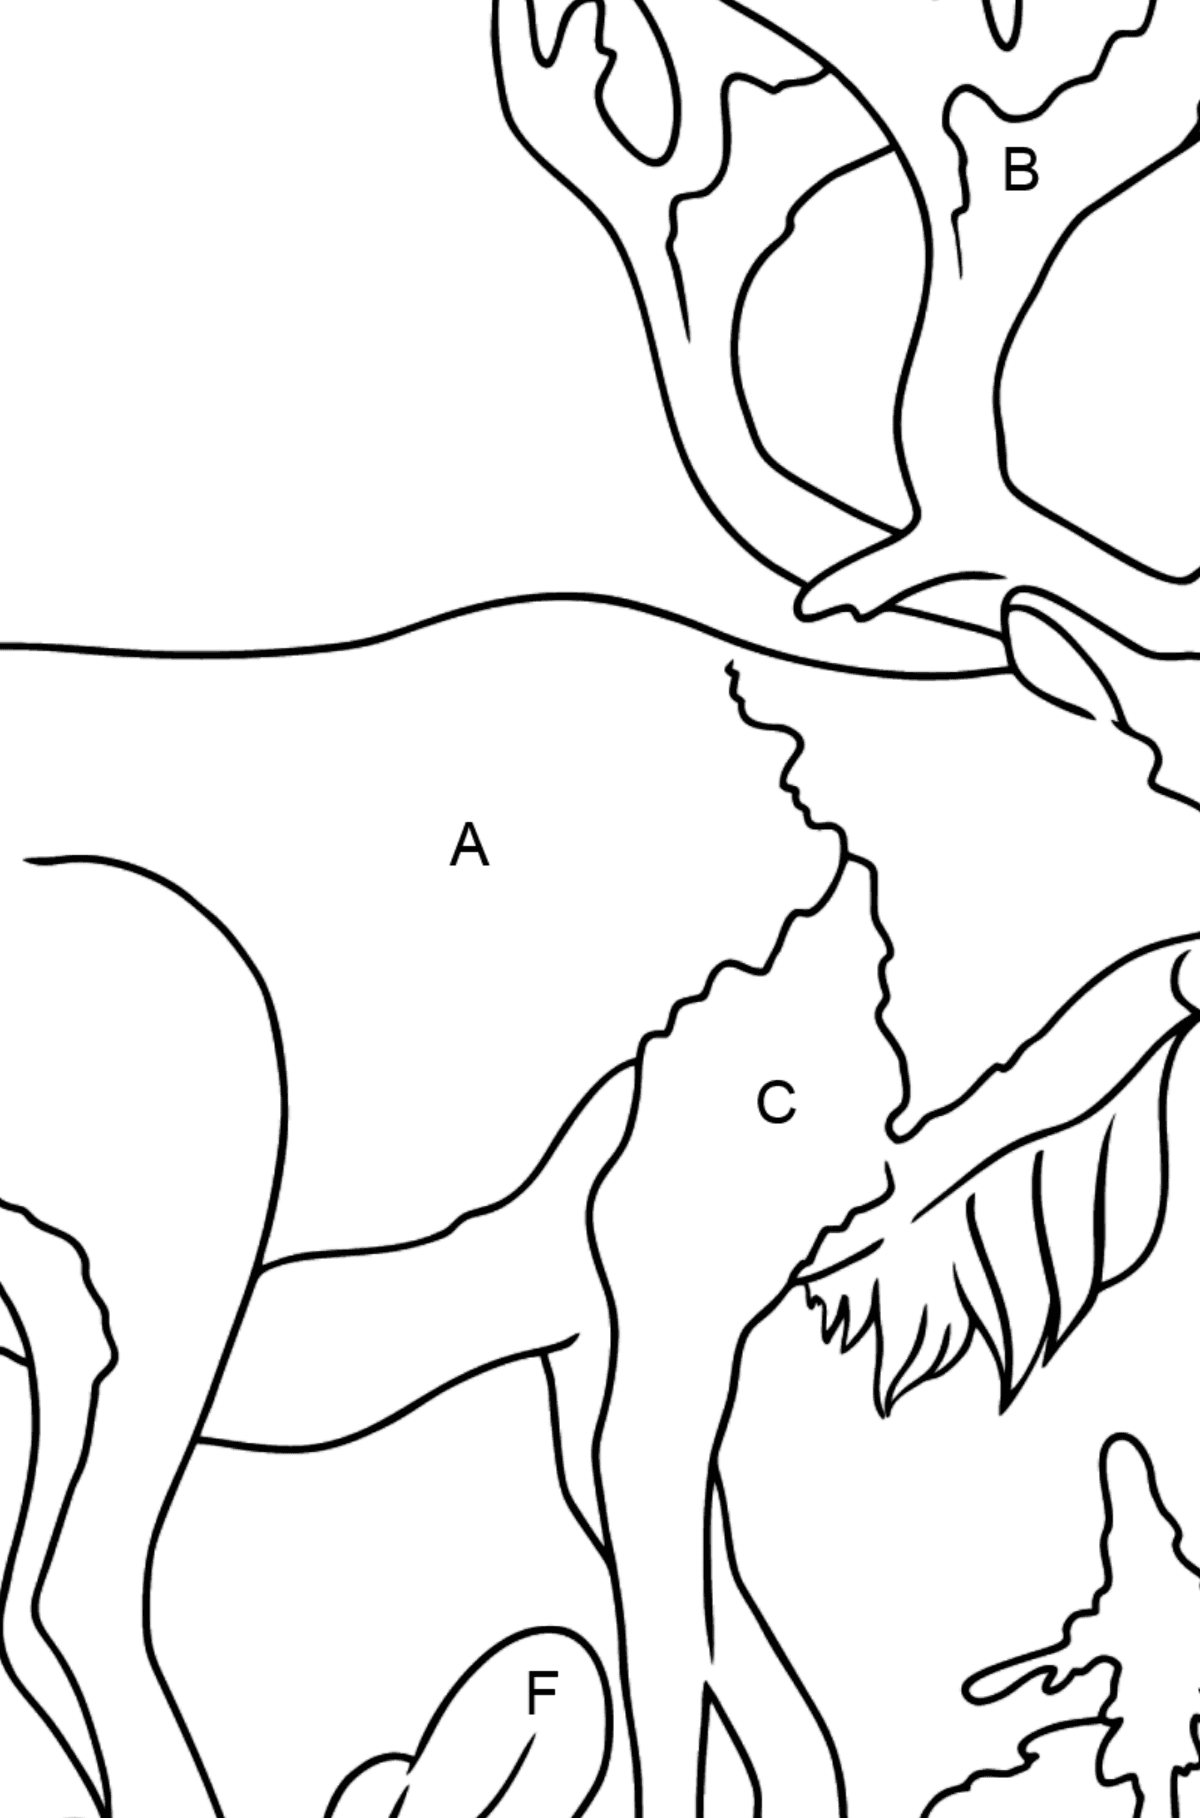 Coloring Page - A Deer with Beautiful Antlers - Coloring by Letters for Kids